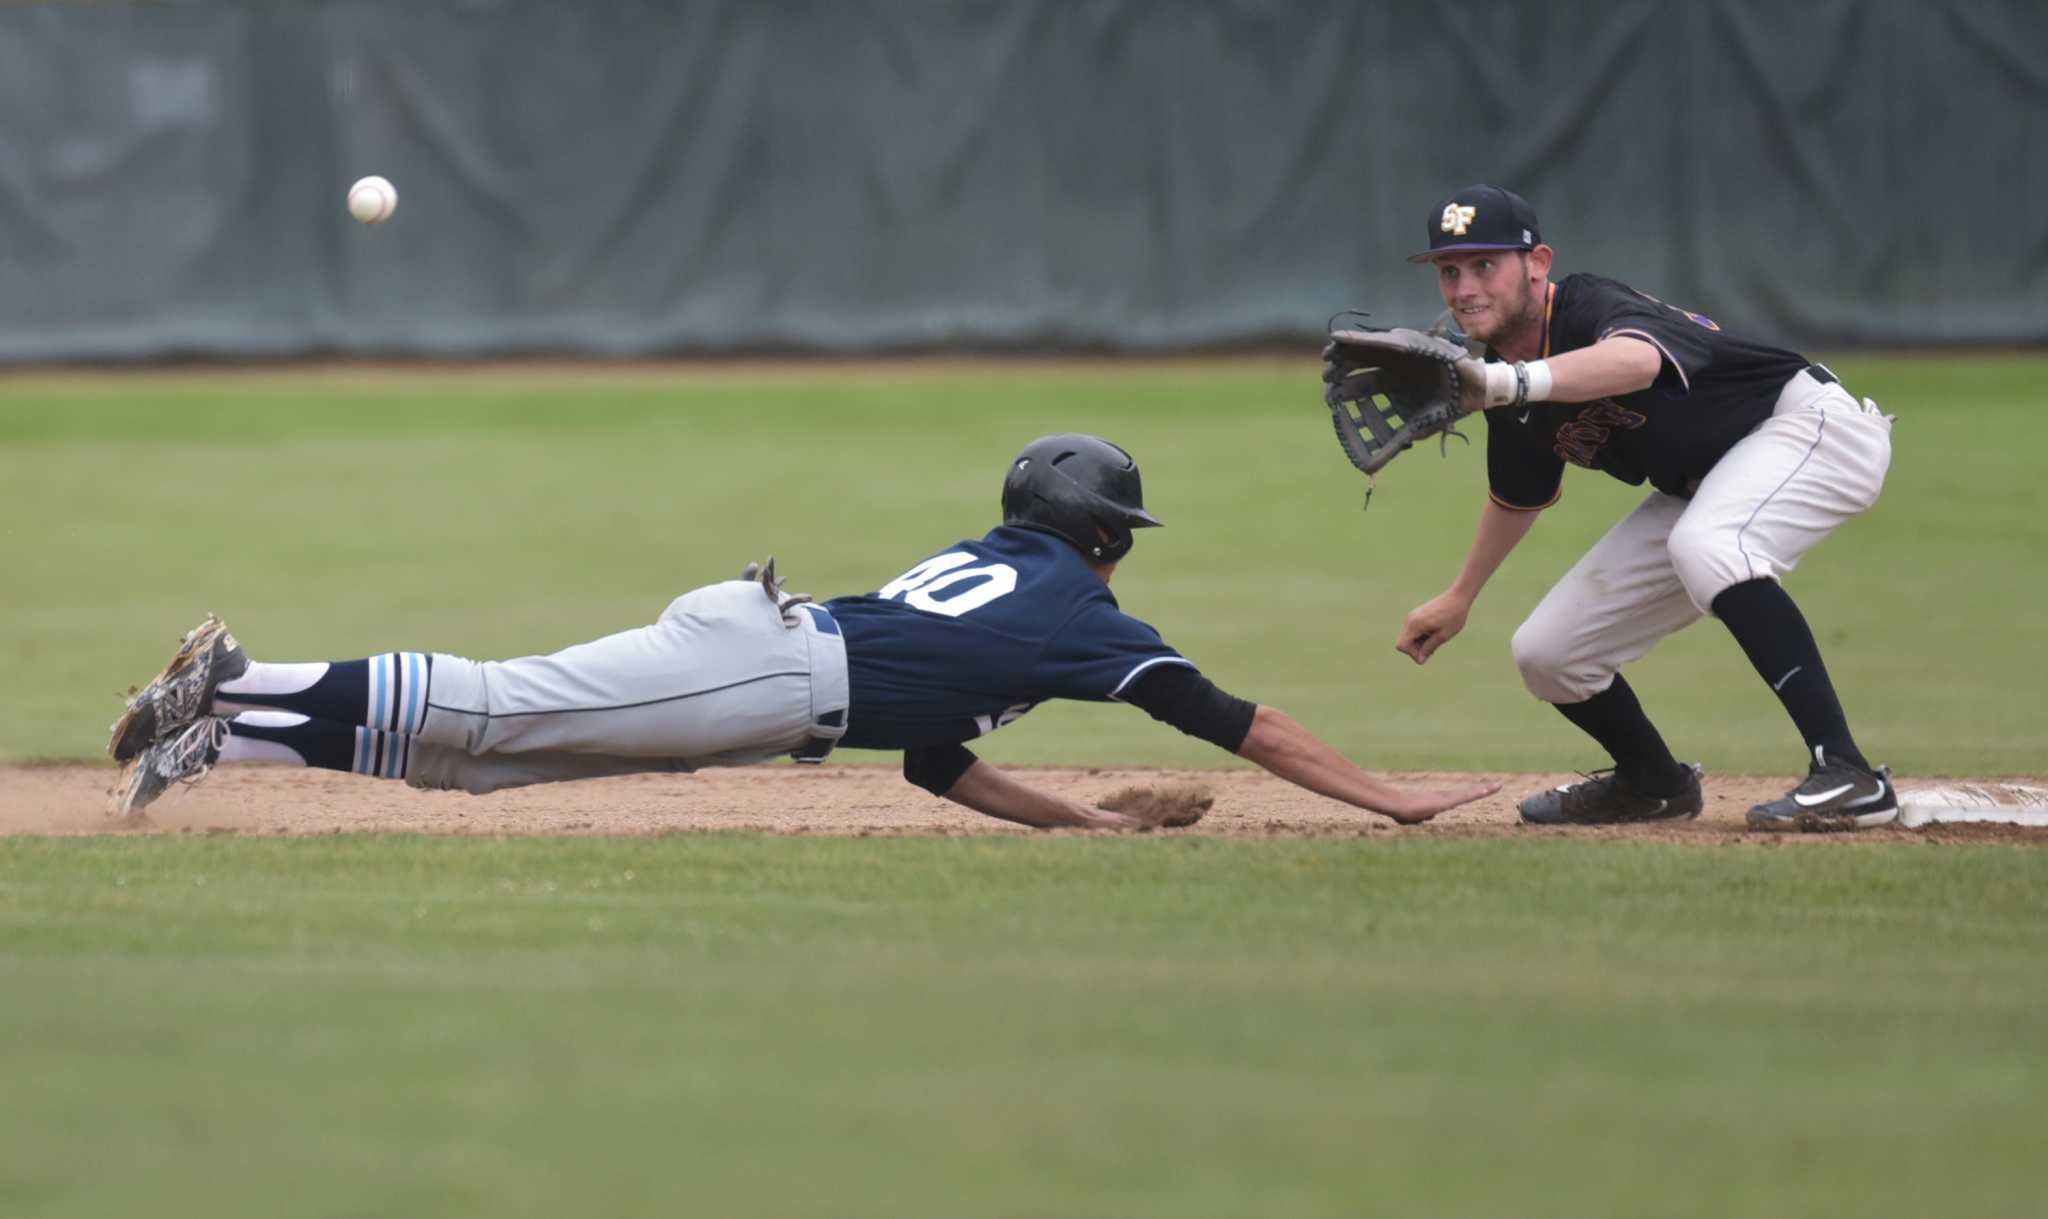 SF State Gators infielder Bryce Brooks (39) tries to tag as Sonoma State Seawolves outfielder Bryant Cid (40) slides back to second base during the game in Gator's 4-11 loss at SF State's baseball field Friday, May 6. (Qing Huang/Xpress)